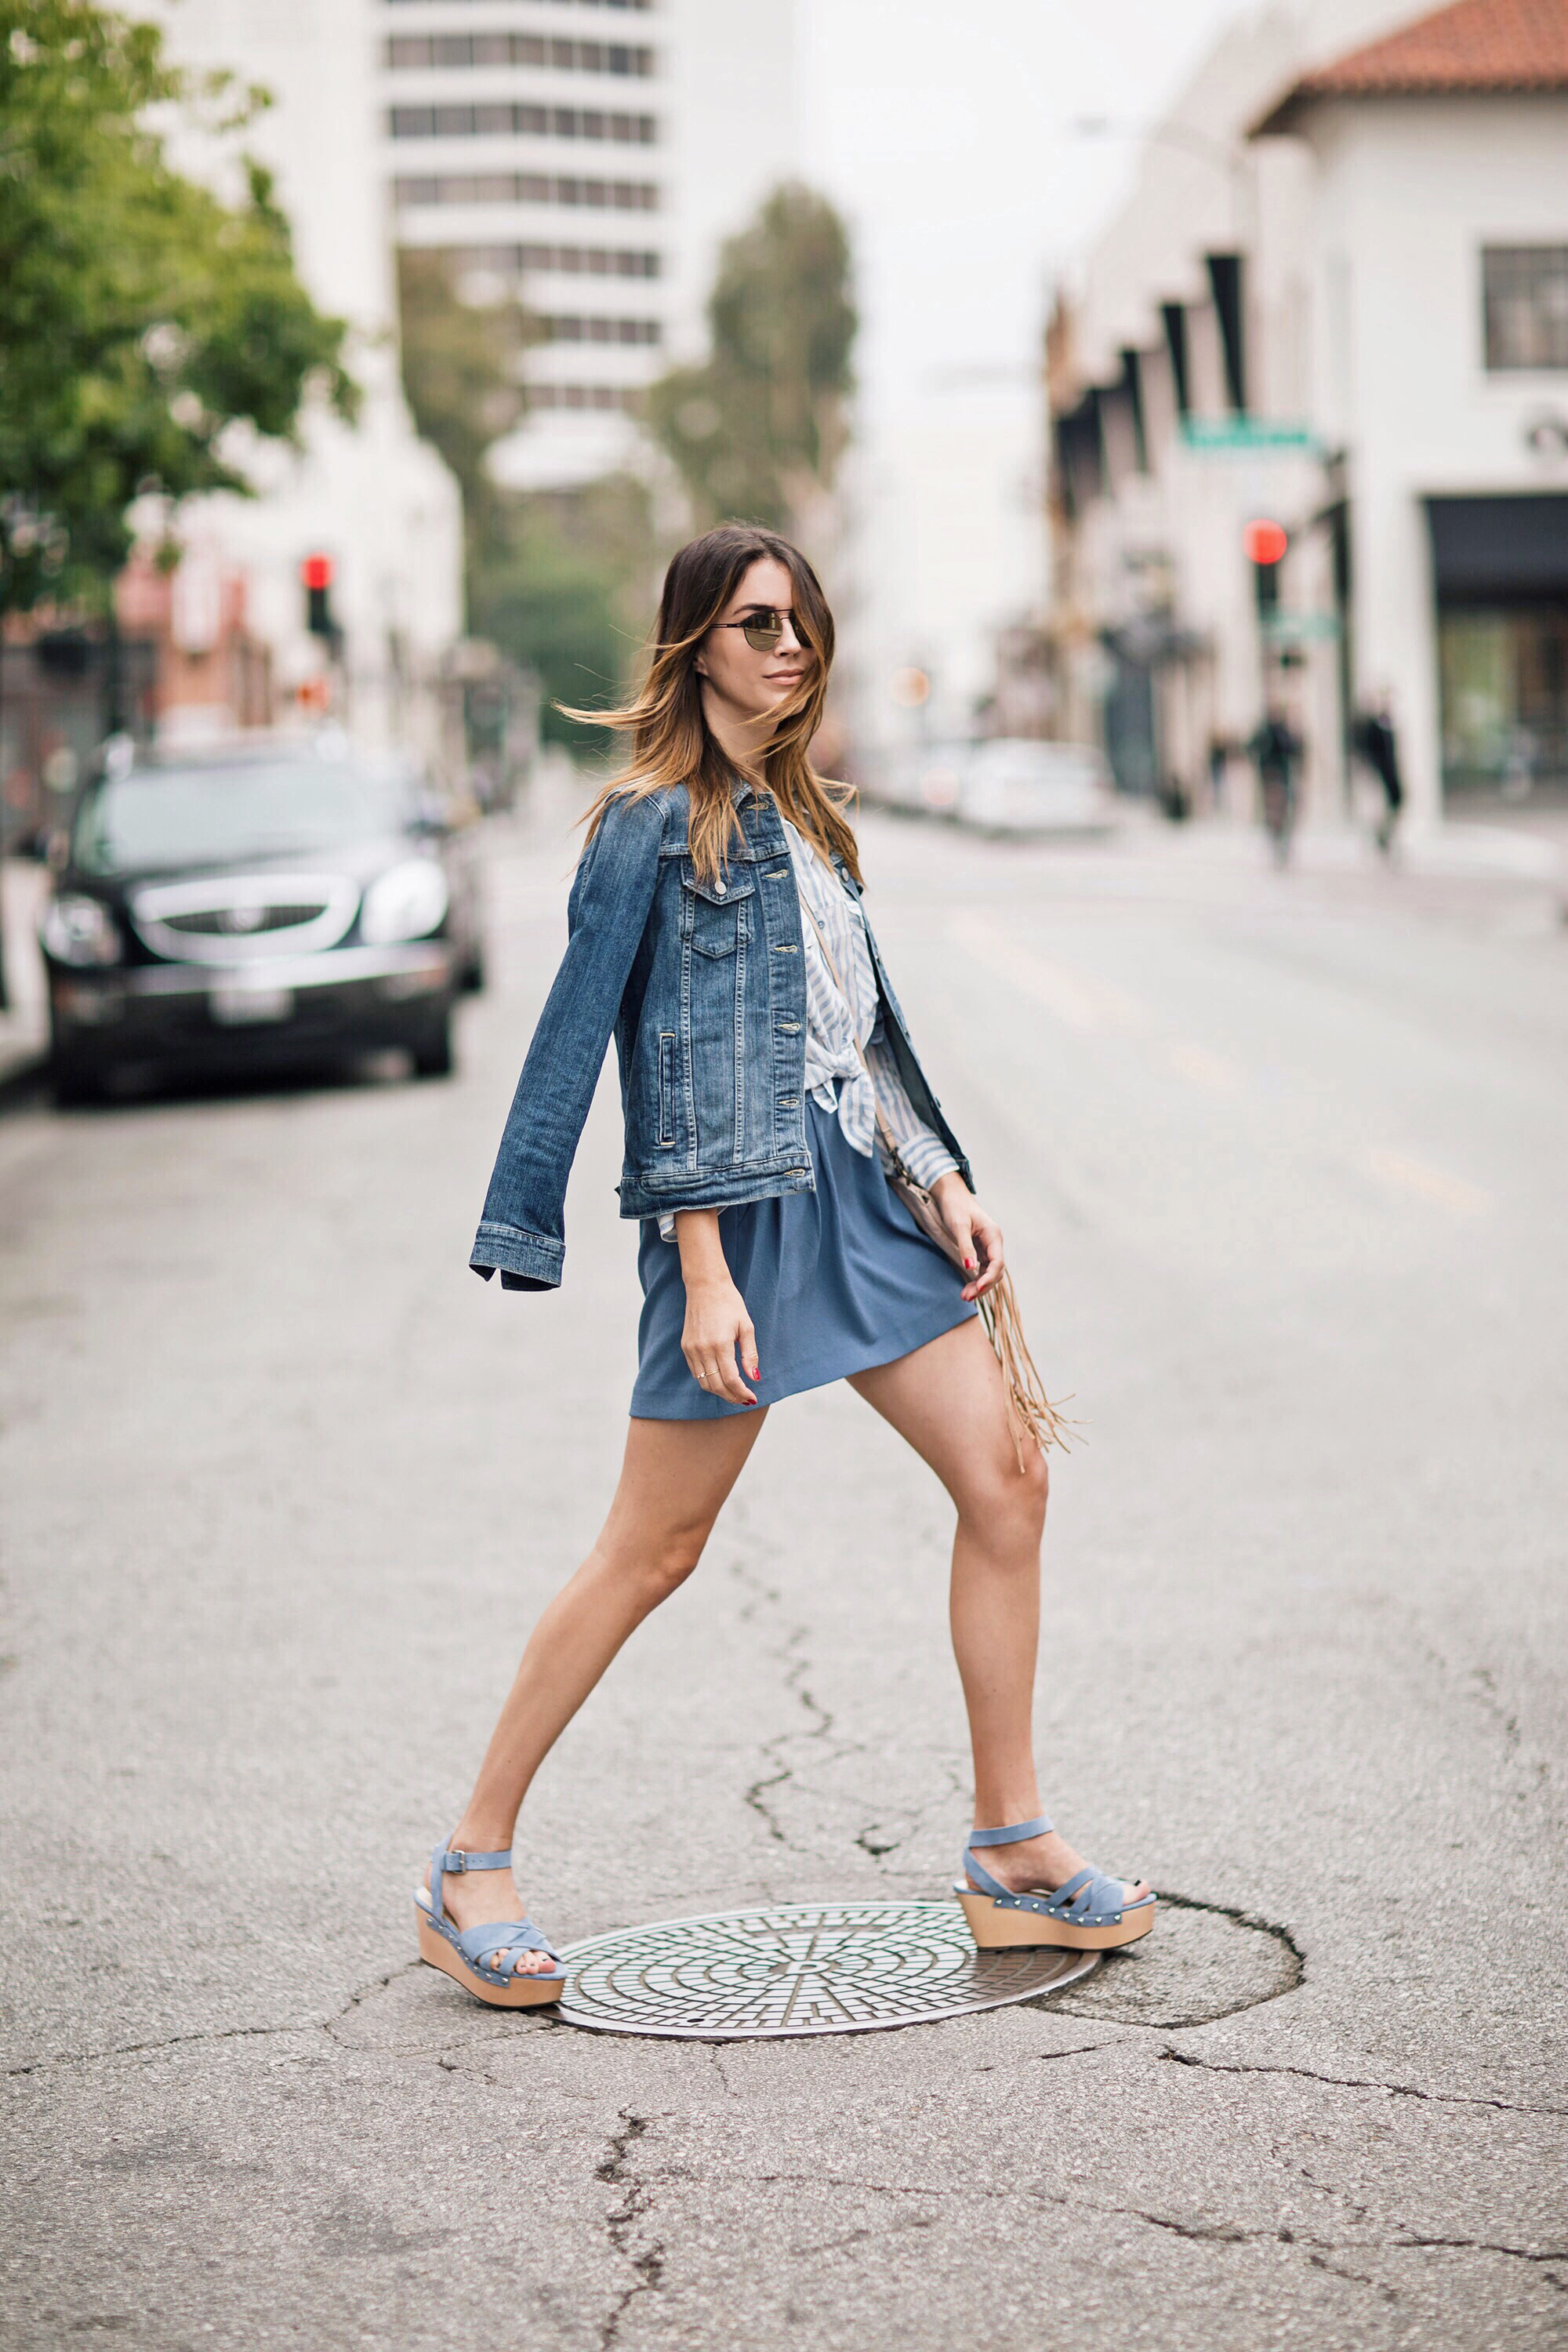 Jean Jacket and Flatform Sandals Style Blogger